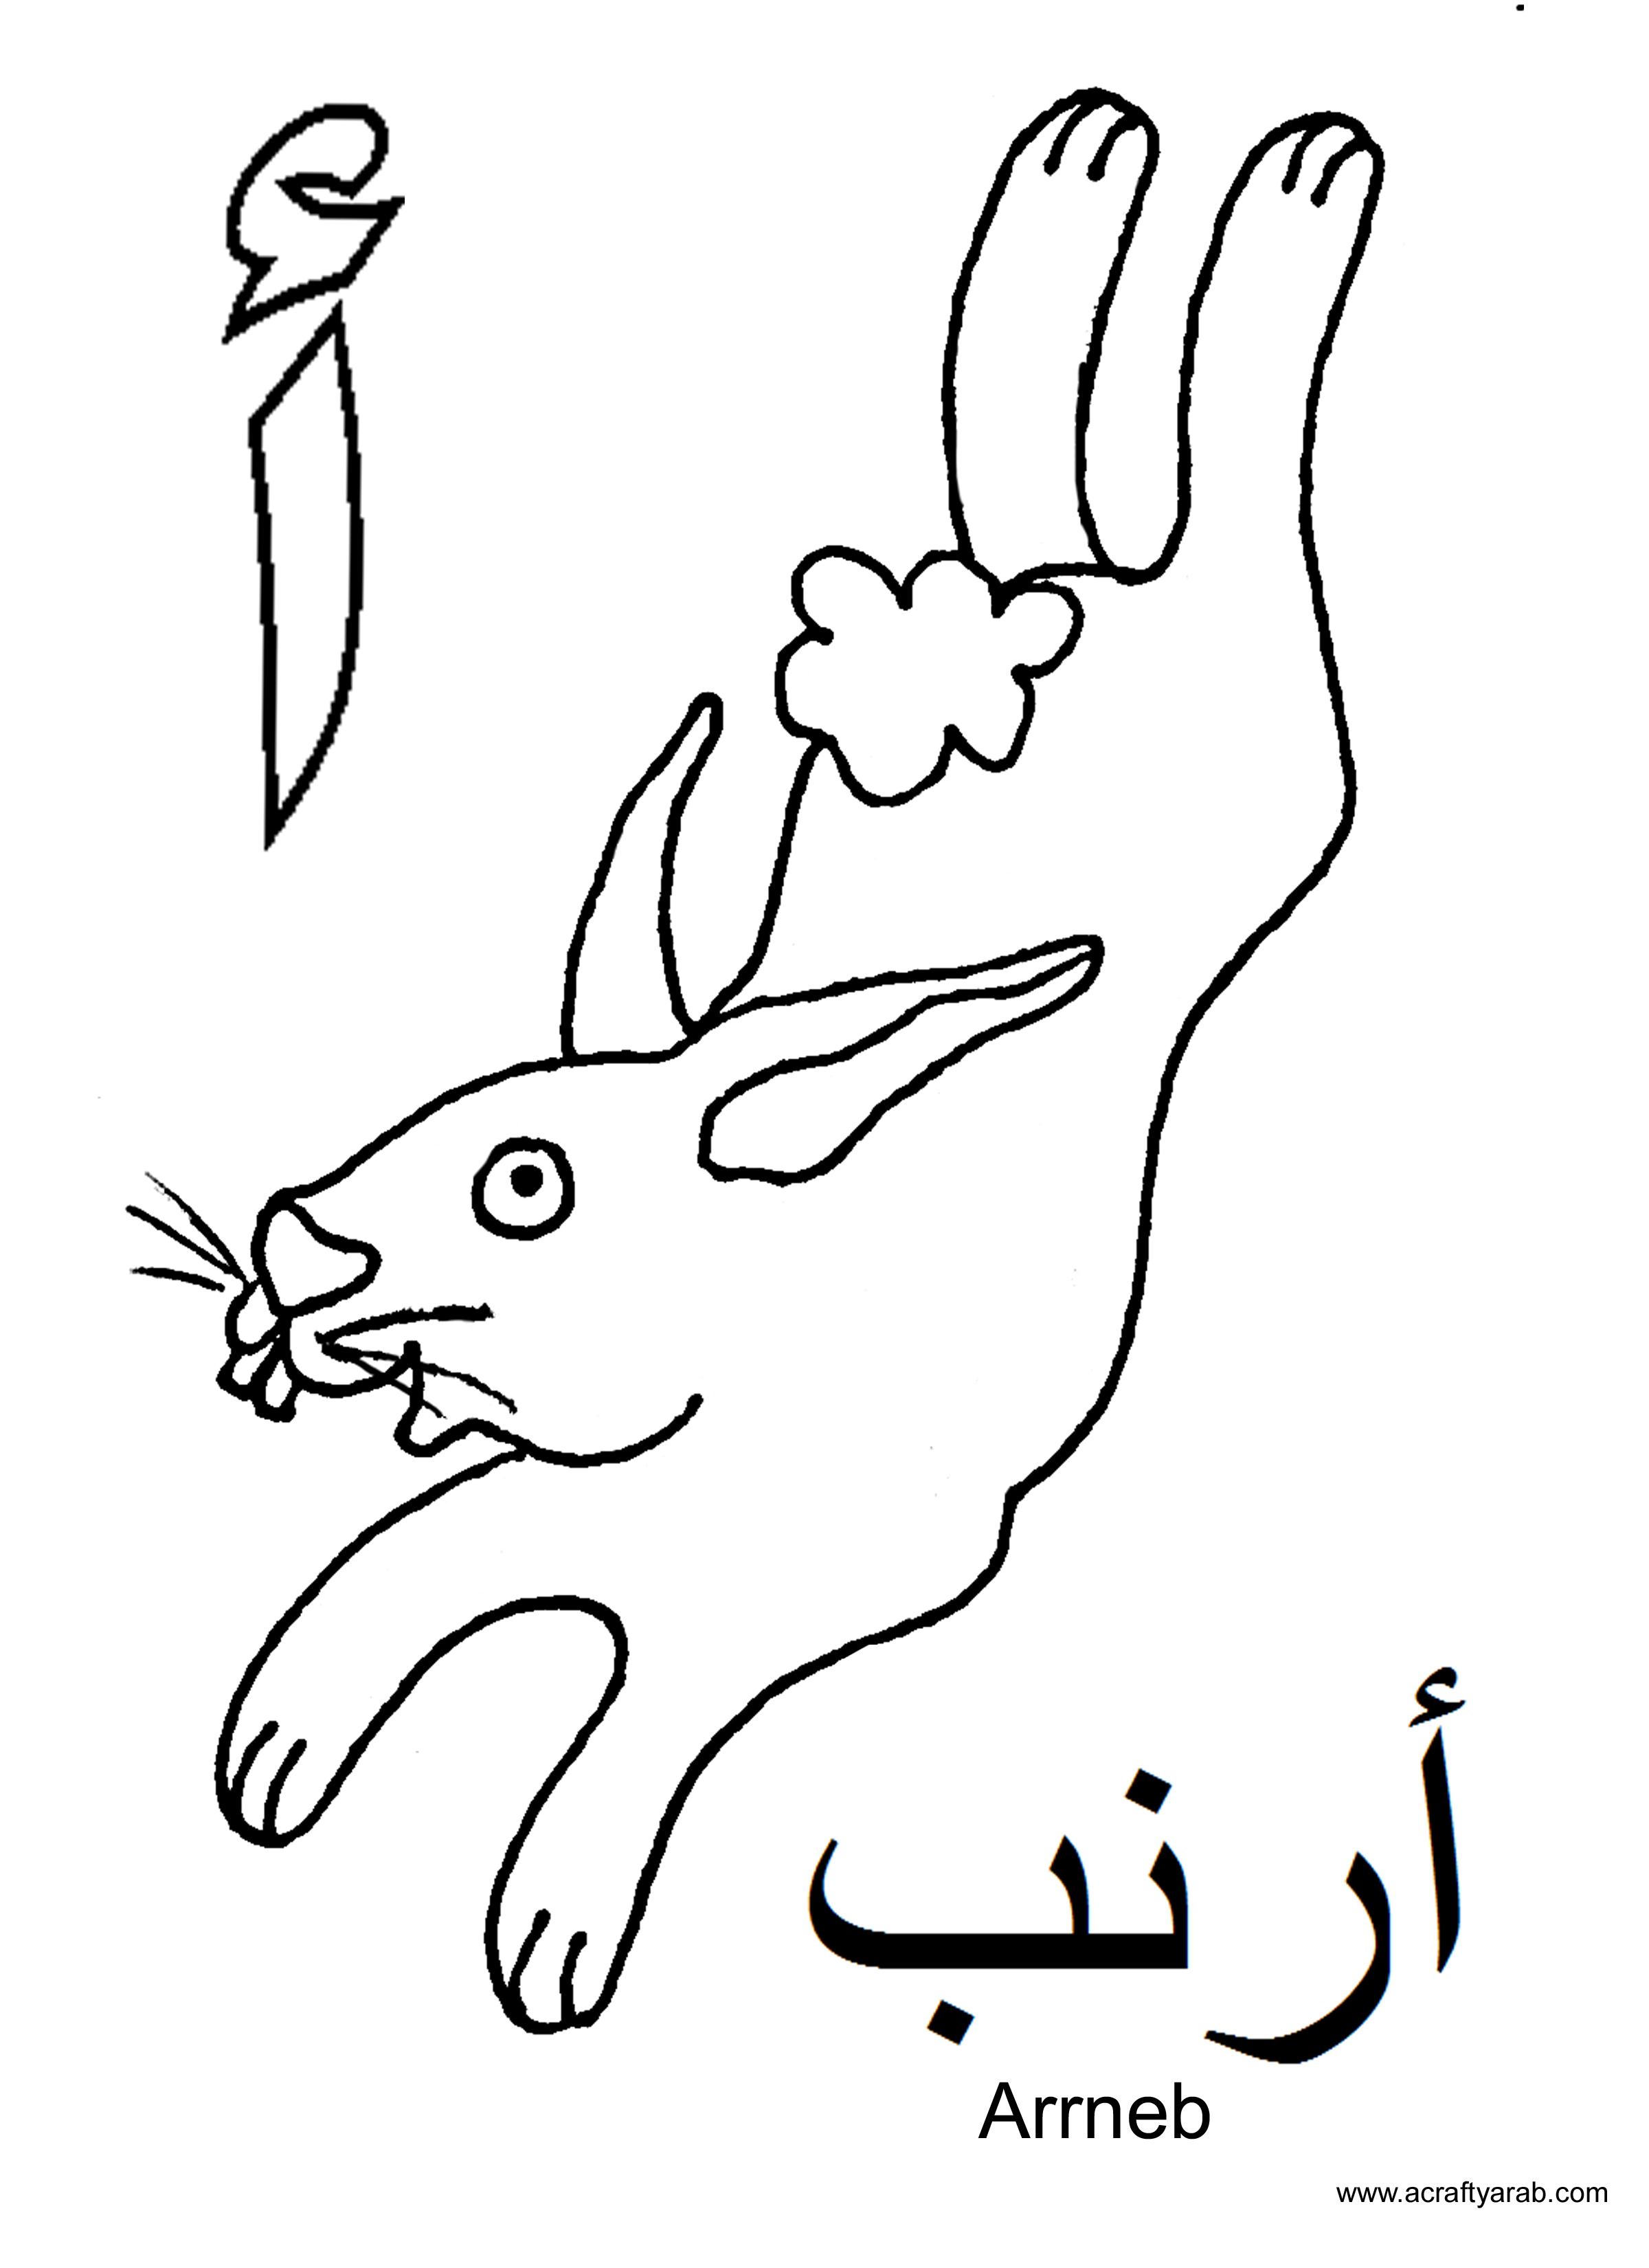 Arabic Alphabet Coloring Pages If Is For Arnab